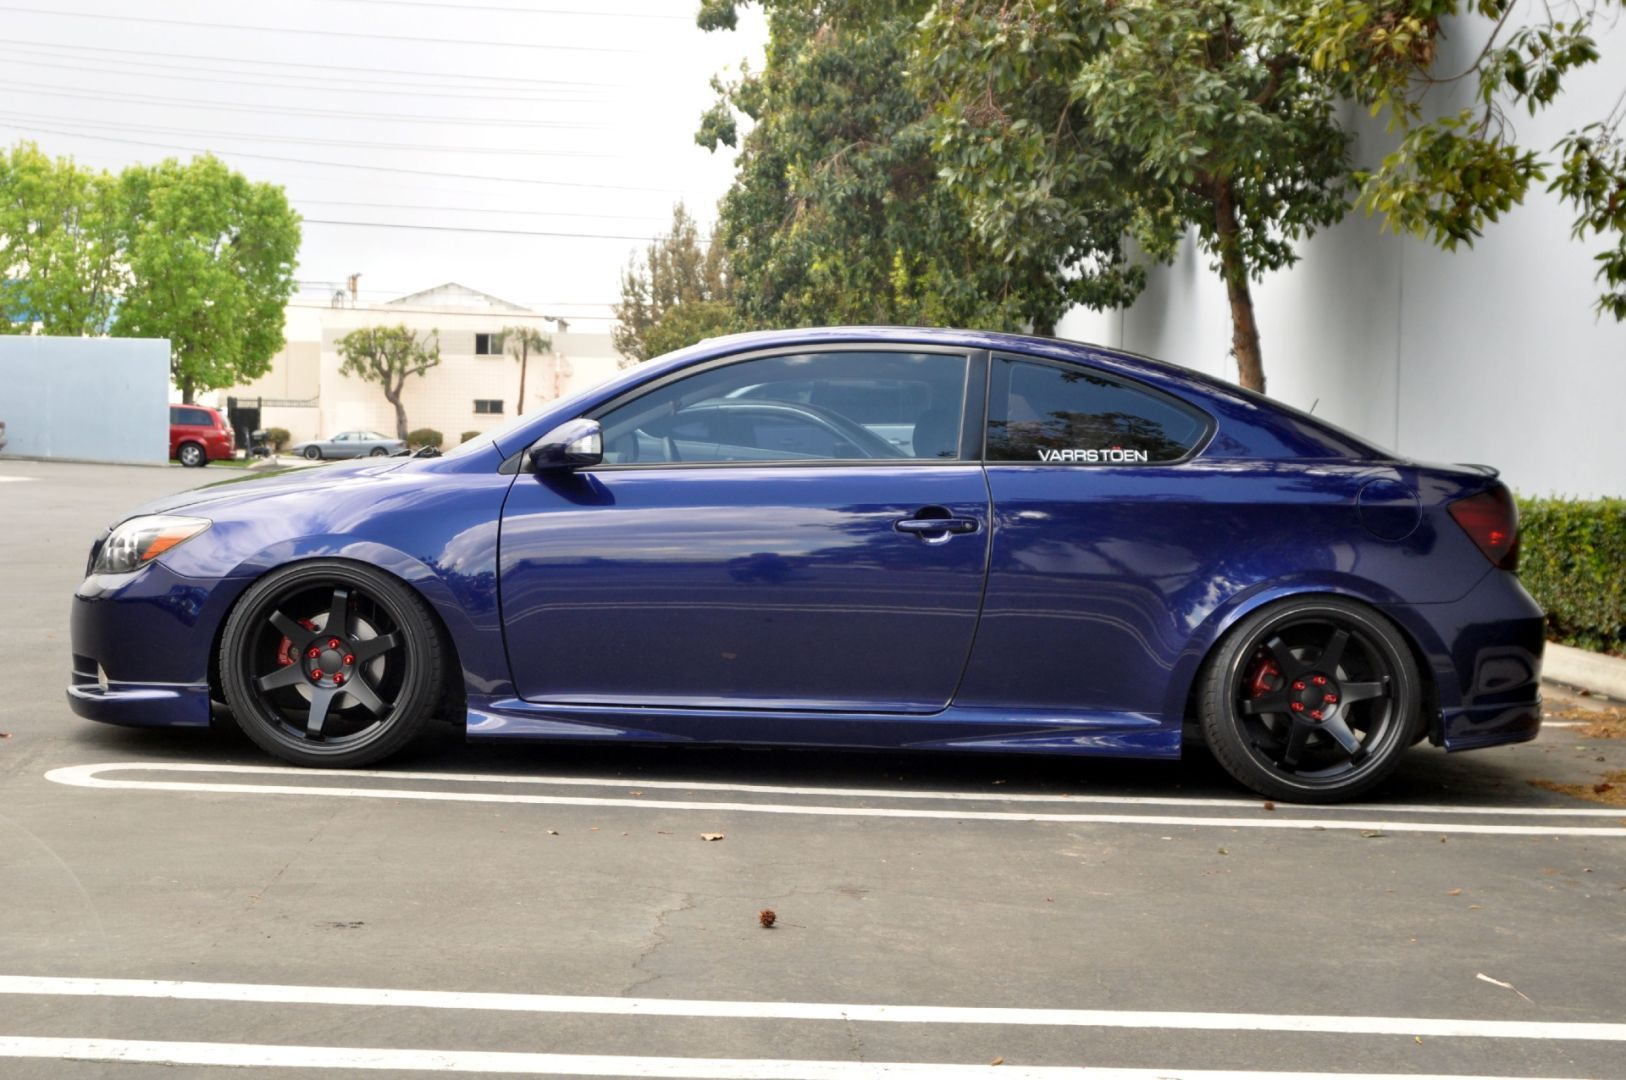 Scion Tc Custom >> Photo 1 Scion Tc Custom Wheels 18x9 5 Et 4 Tire Size 215 35 R18 X